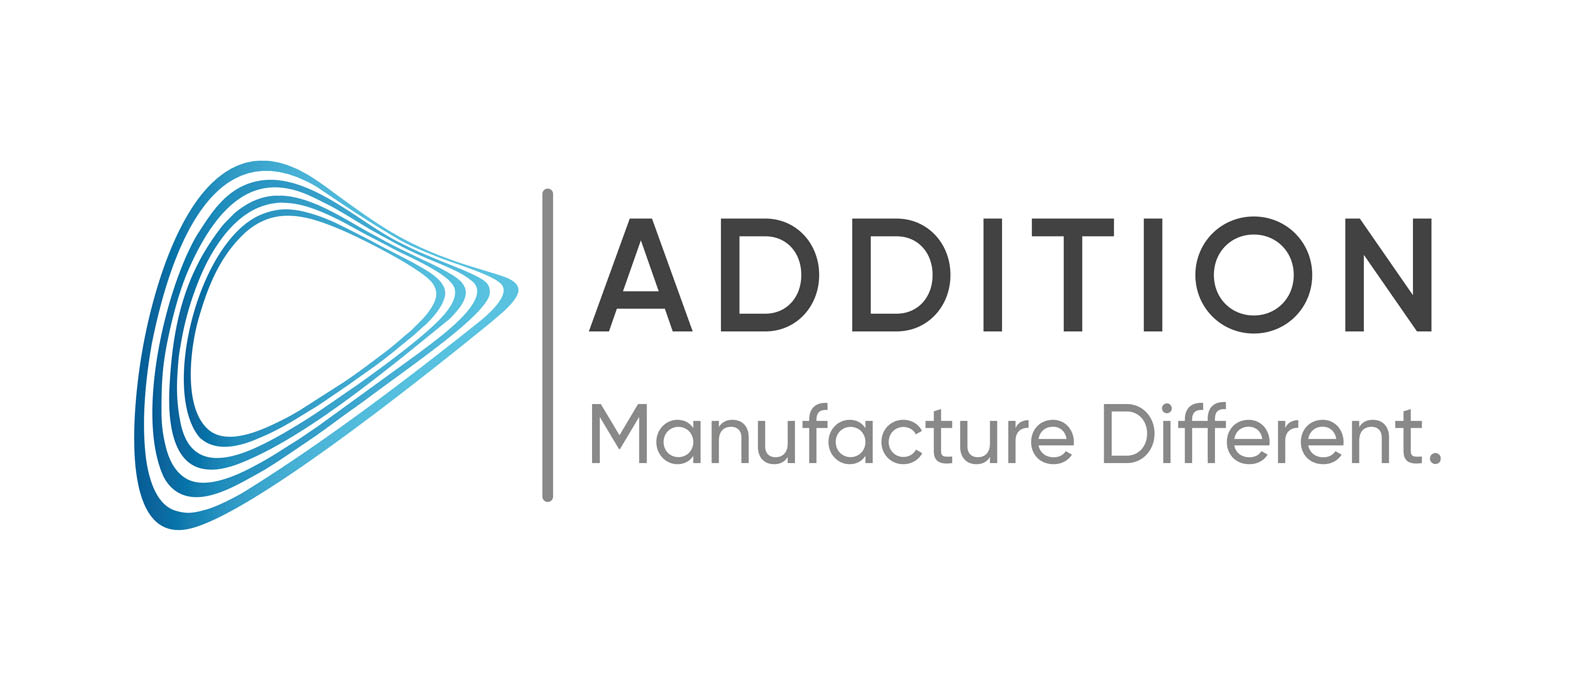 Addition - Additive Manufacturing Consultancy